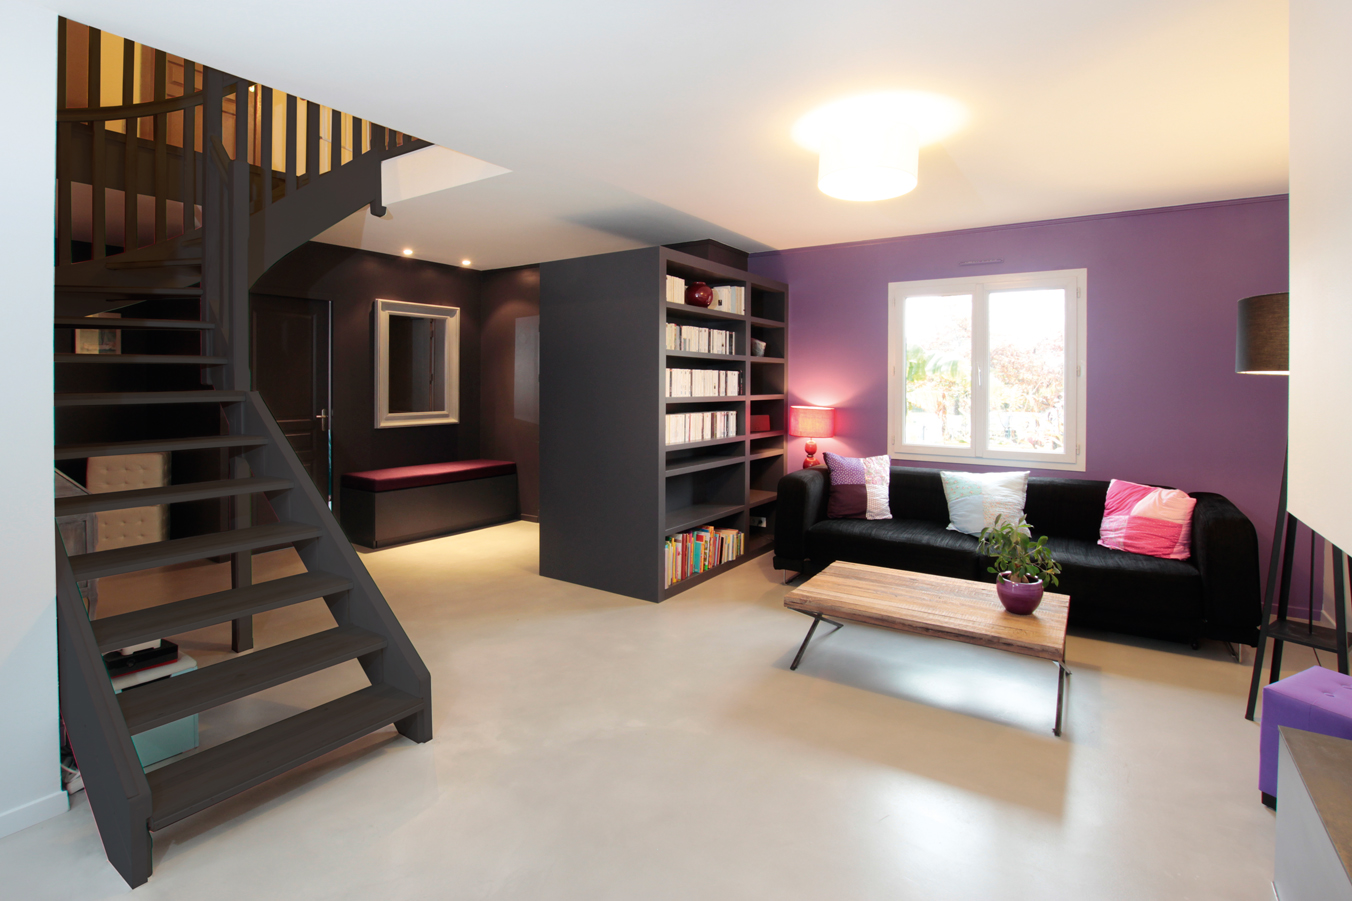 R novation en architecture d 39 int rieur sur nantes et for Decoration d un salon maison